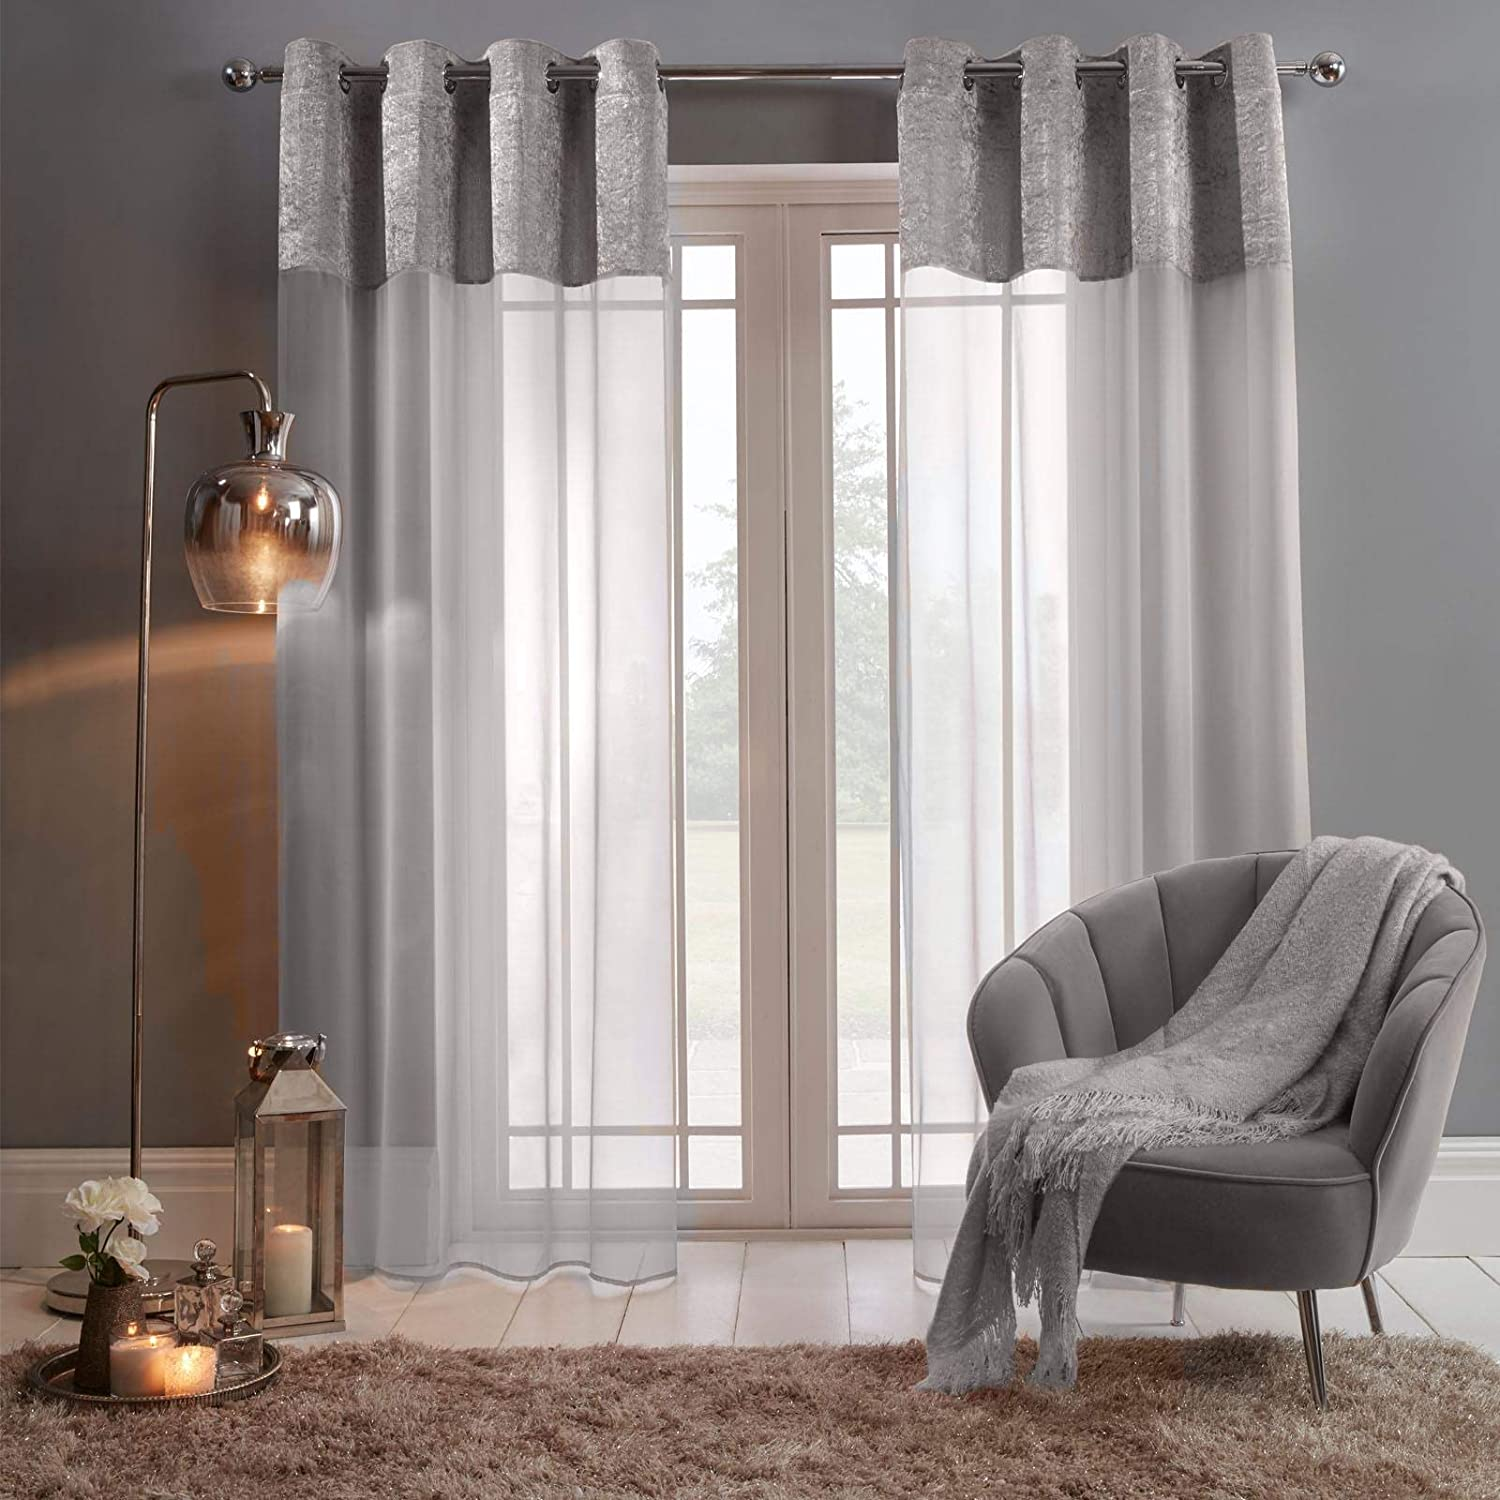 """Sienna Pair of Crushed Window Treatment Panel Lace Voile Net Curtain Textured Eyelet Ring Top, Silver Grey Panels-55, Velvet, 55"""" wide x 87"""" drop 55"""" wide x 87"""" drop Silver Grey"""